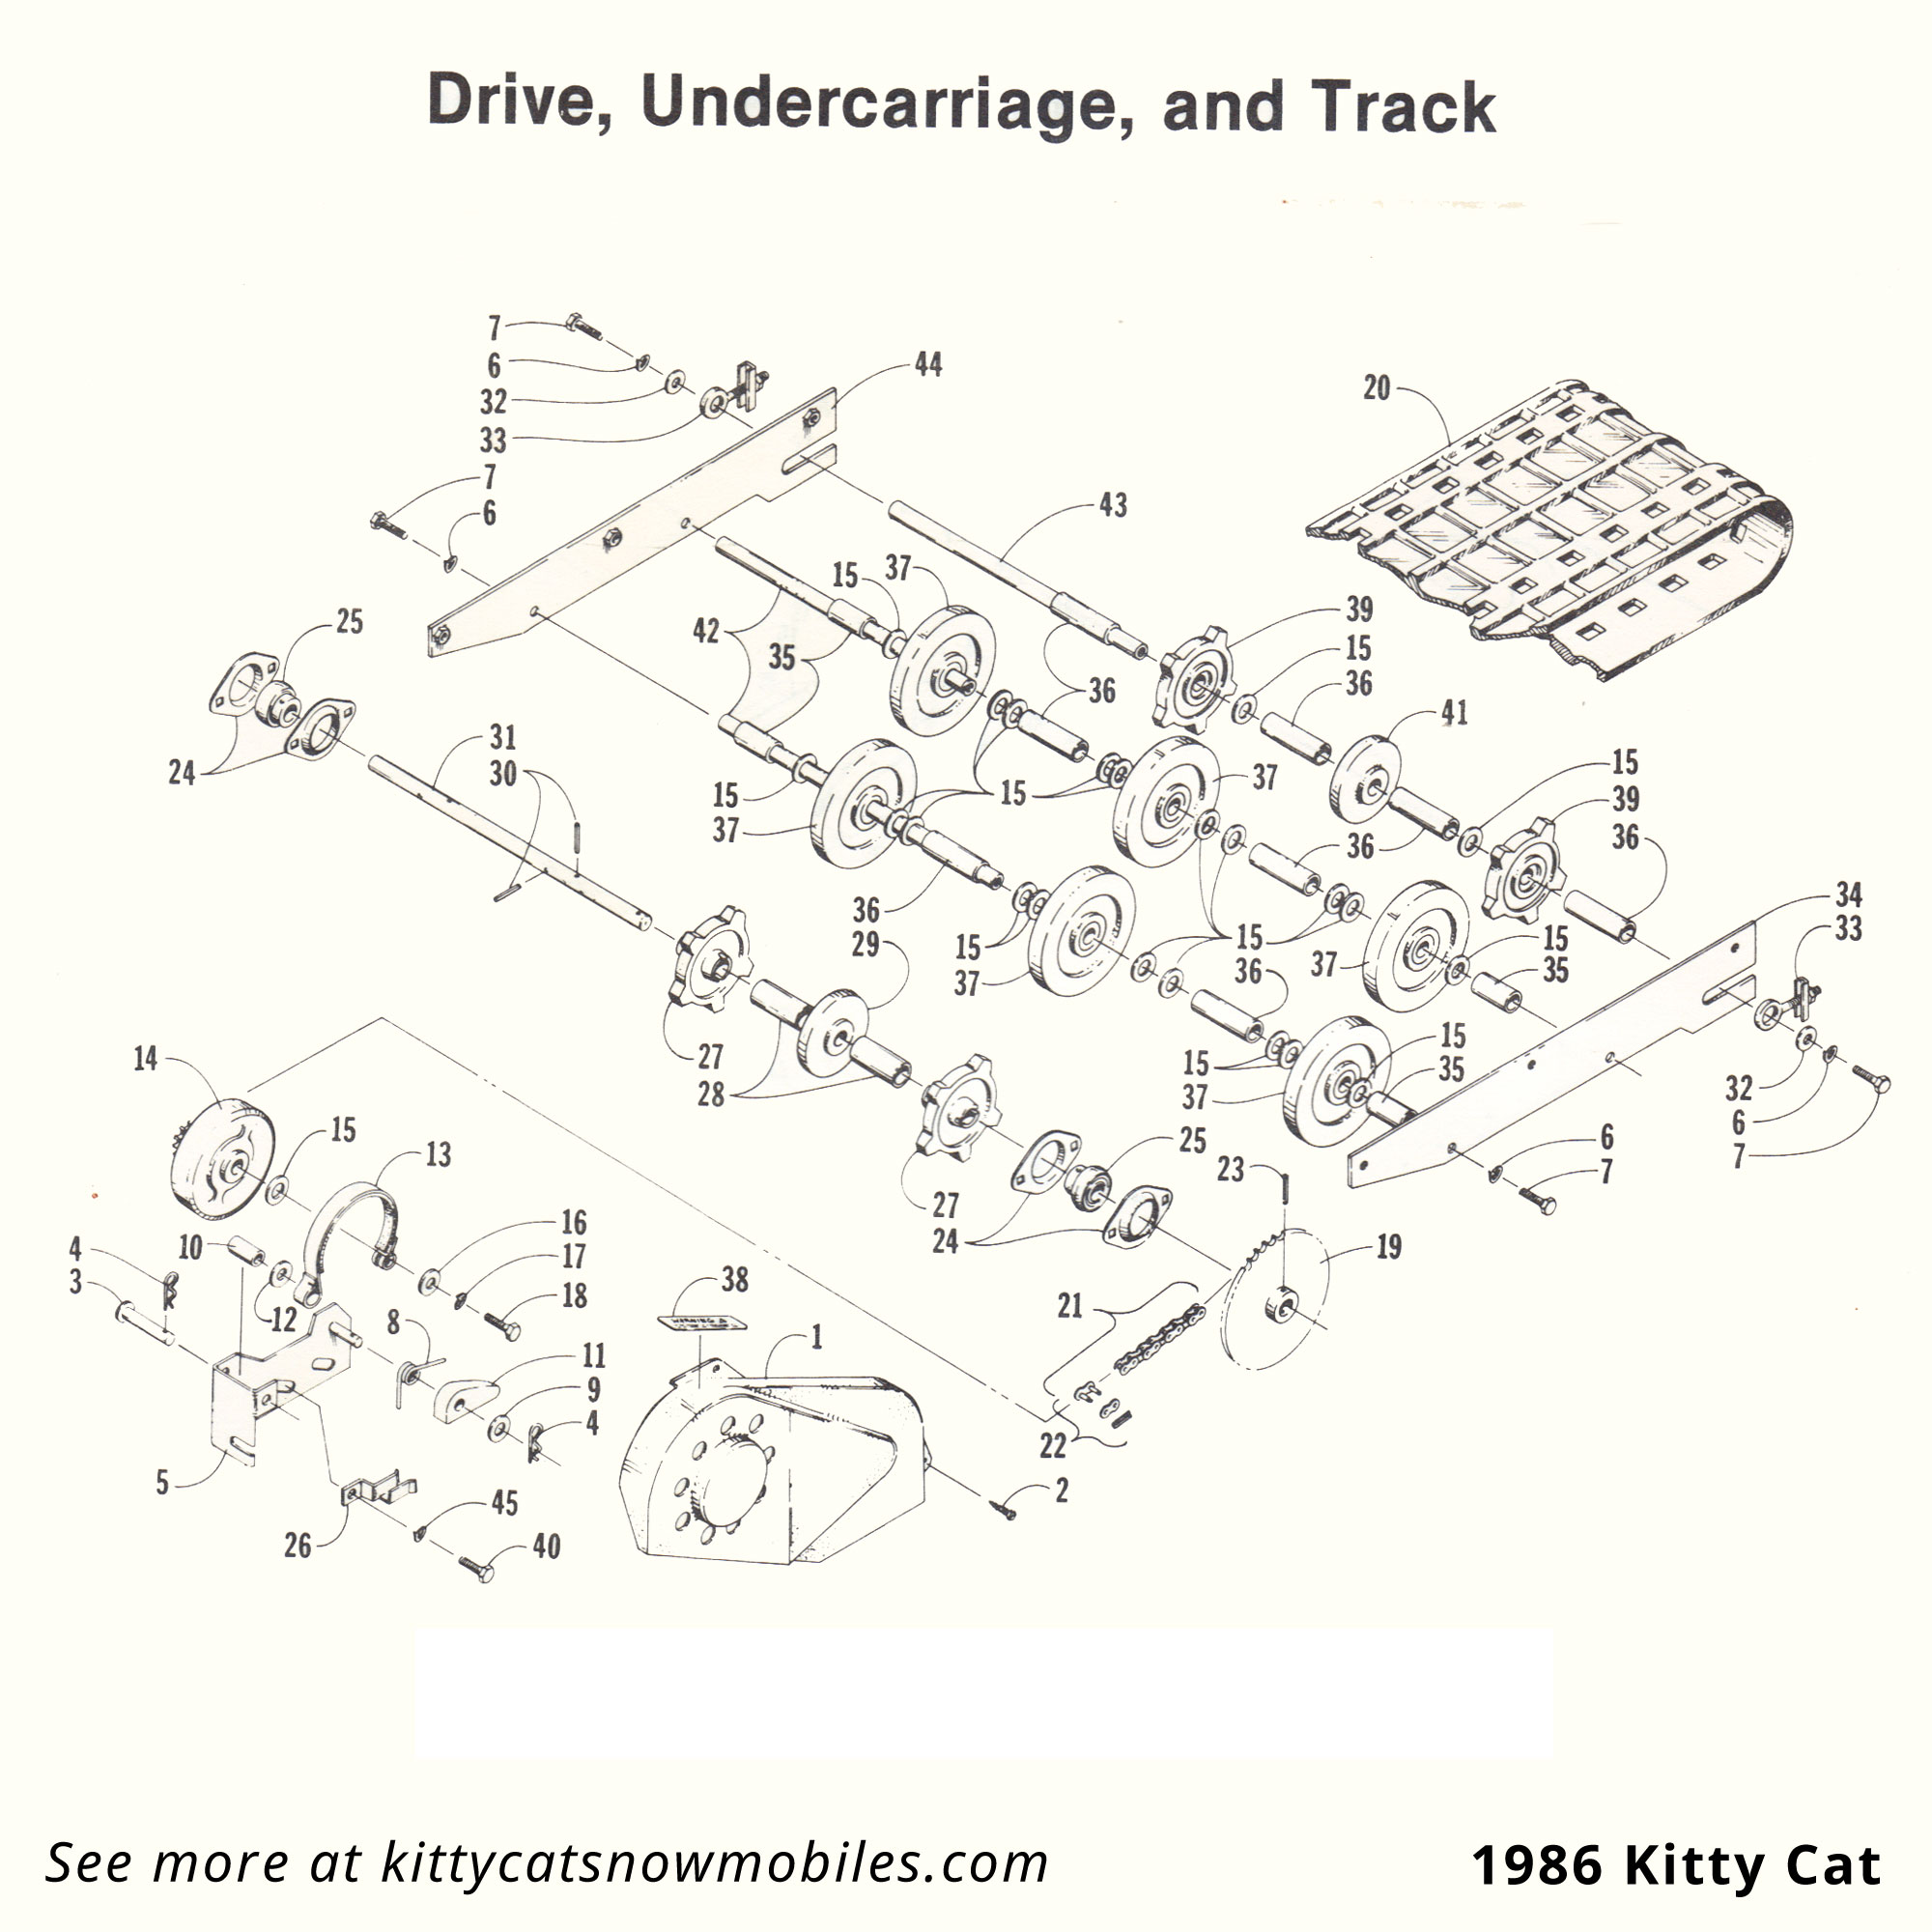 86 Kitty Cat Drive Undercarriage And Track Parts